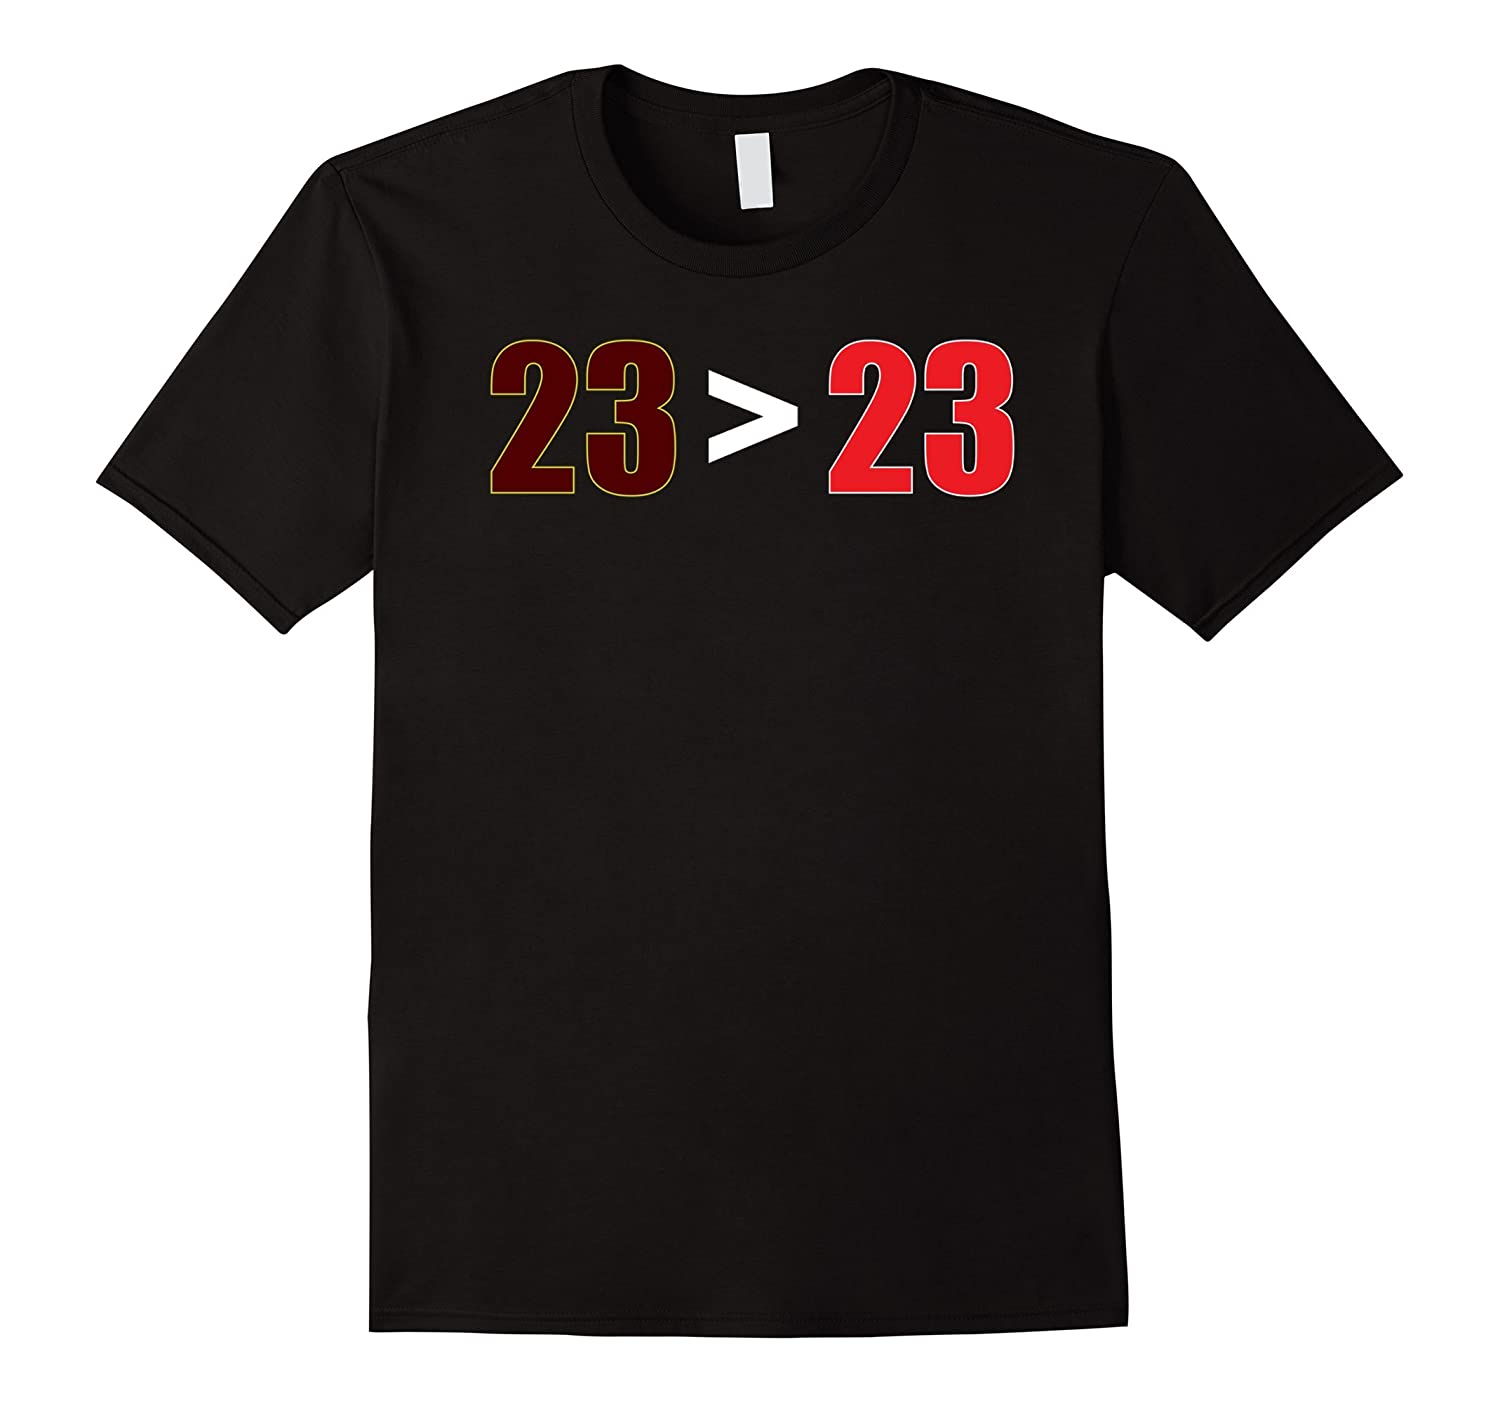 23  23 Shirt  23 is great than 23 Tshirt SUPPORT the King-PL